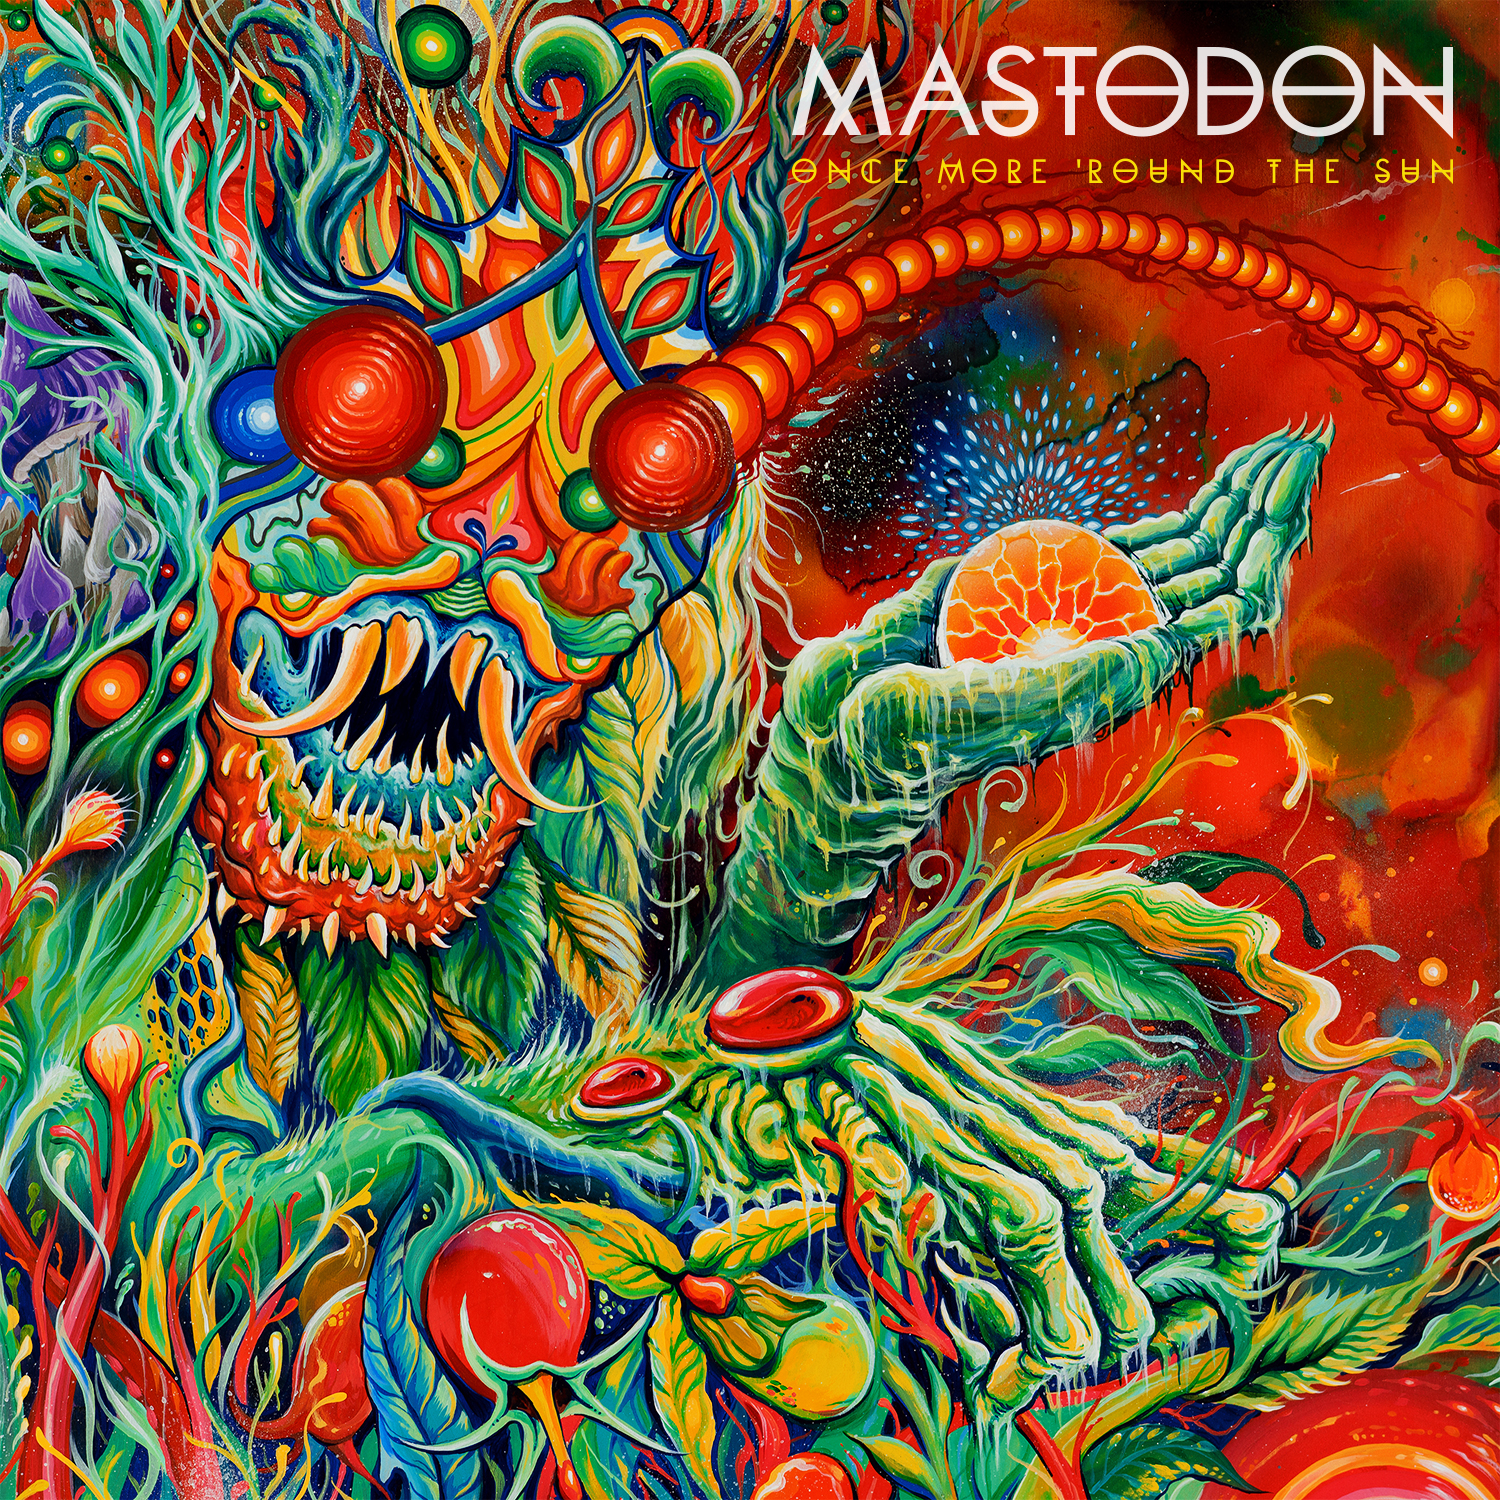 MASTODON – Once More 'Round the Sun